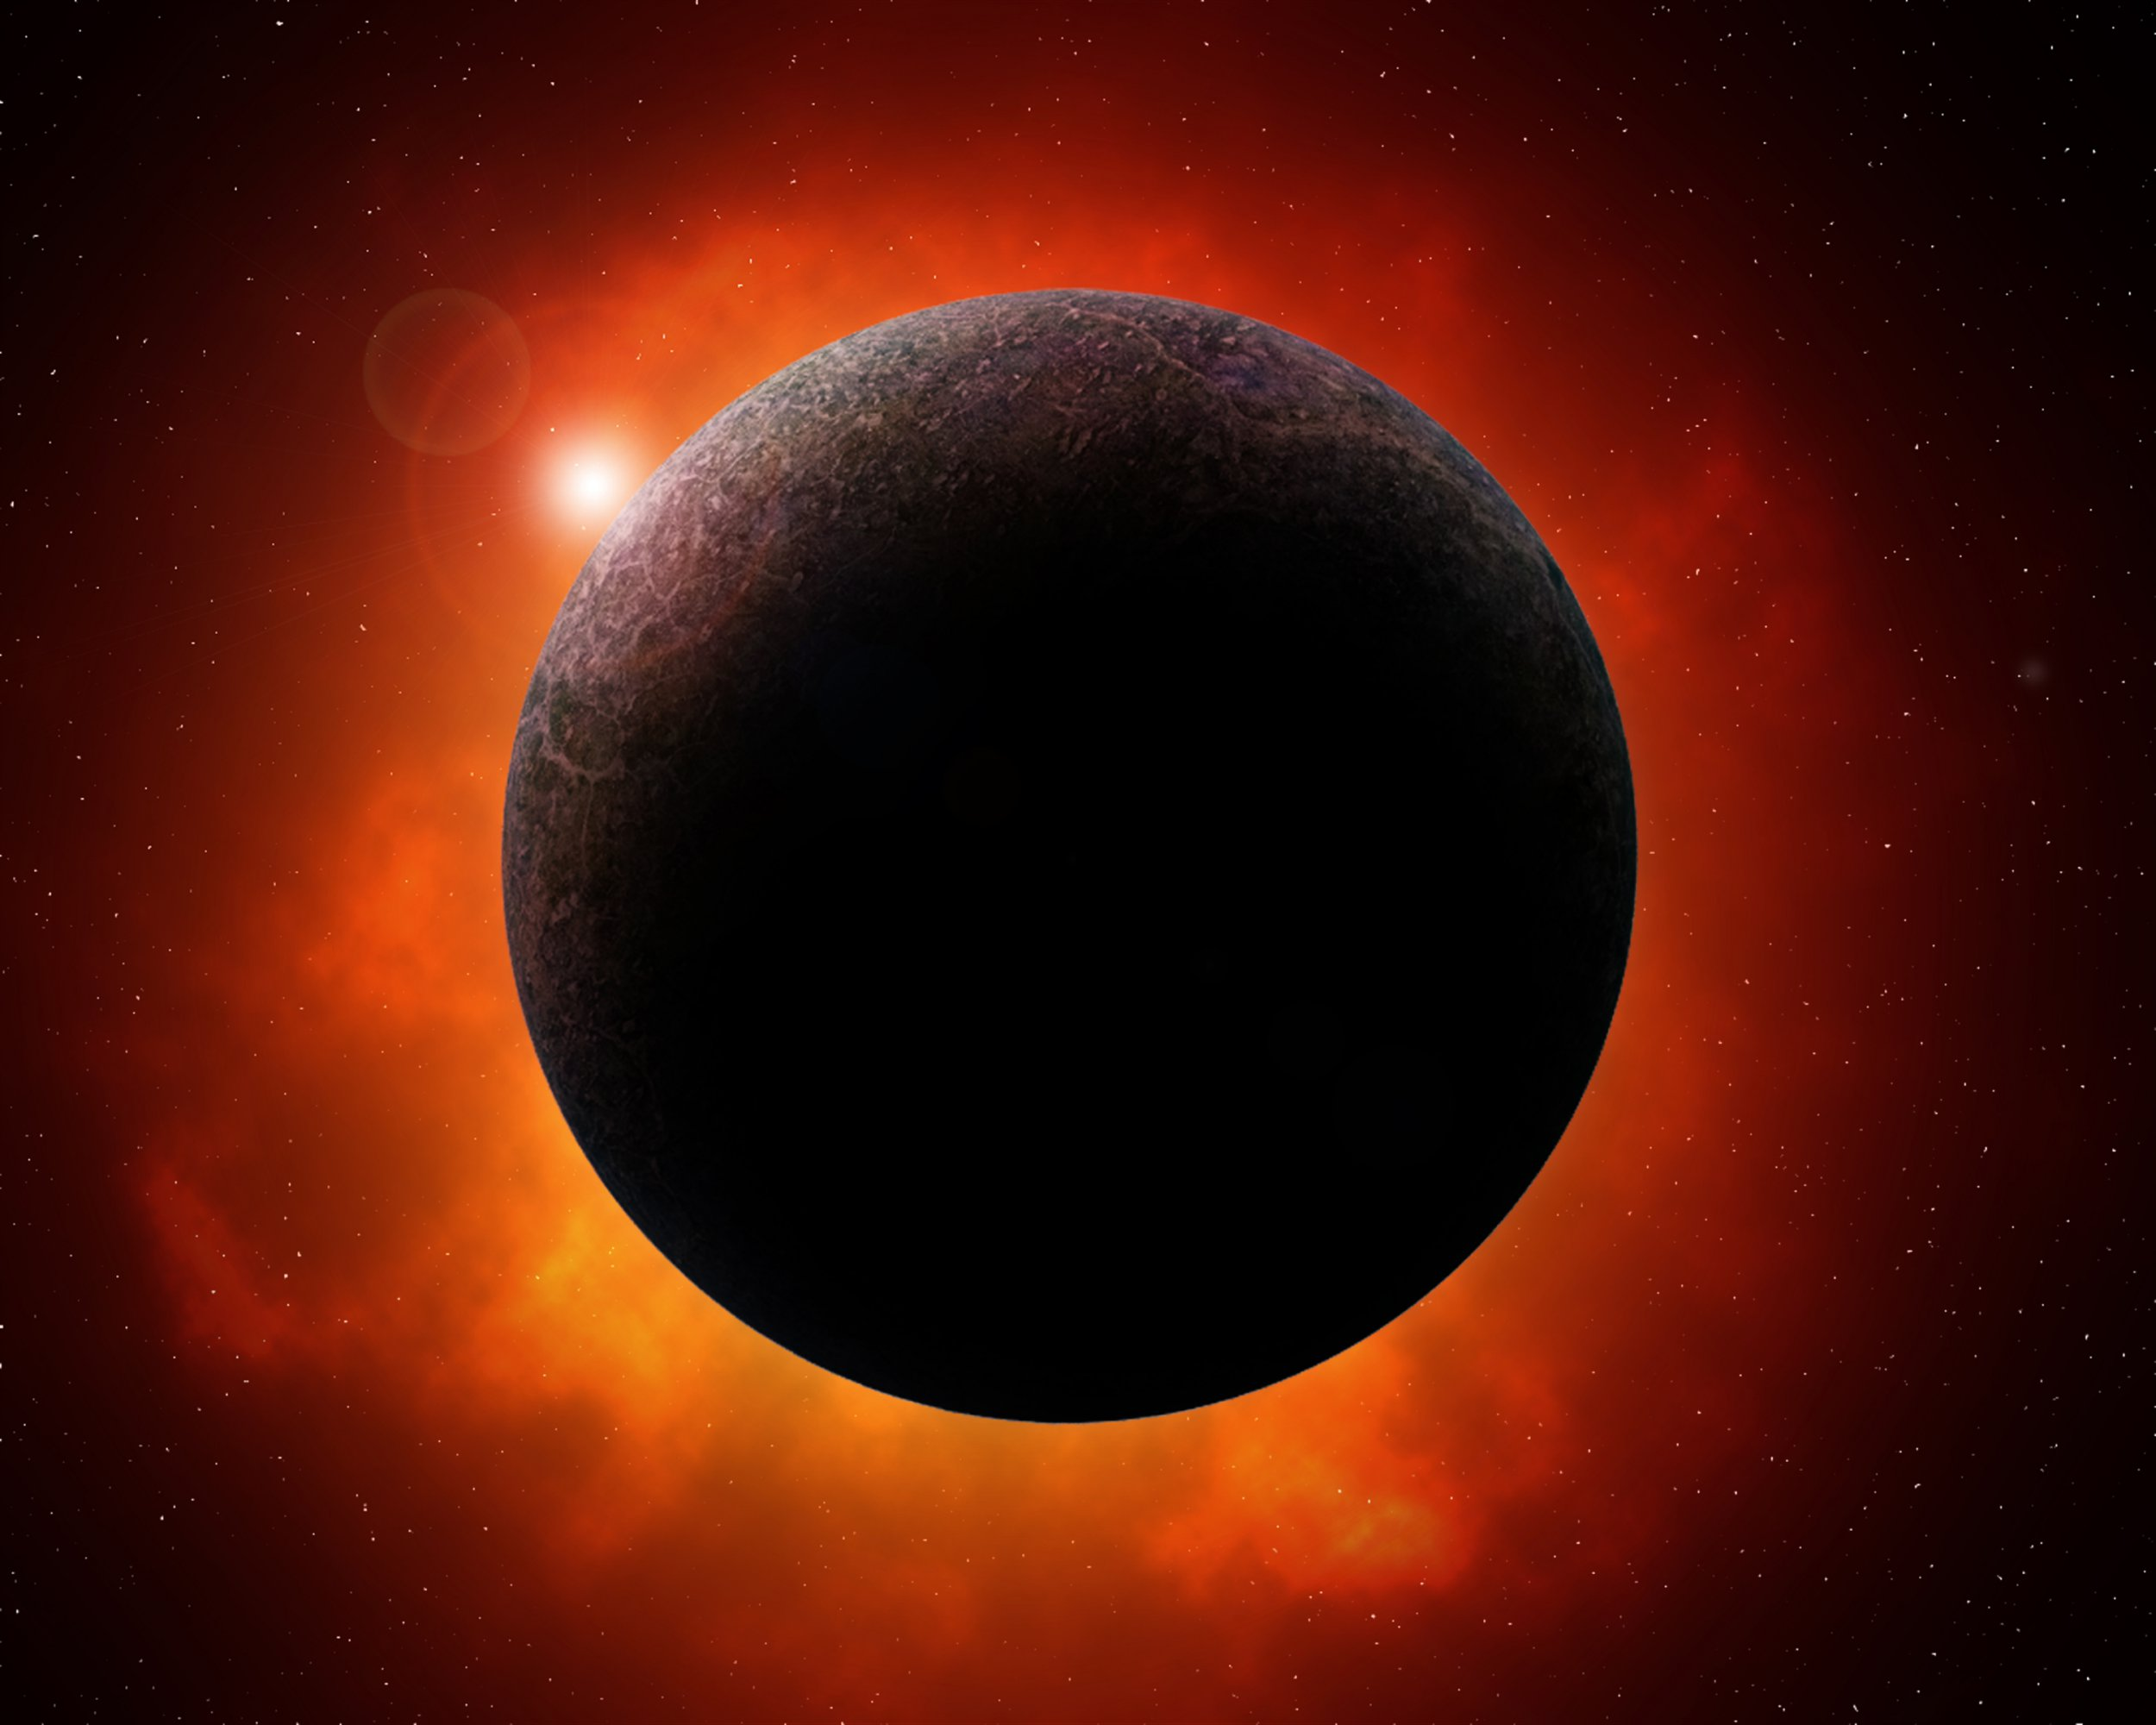 A large mystery planet on the edge of our solar system.